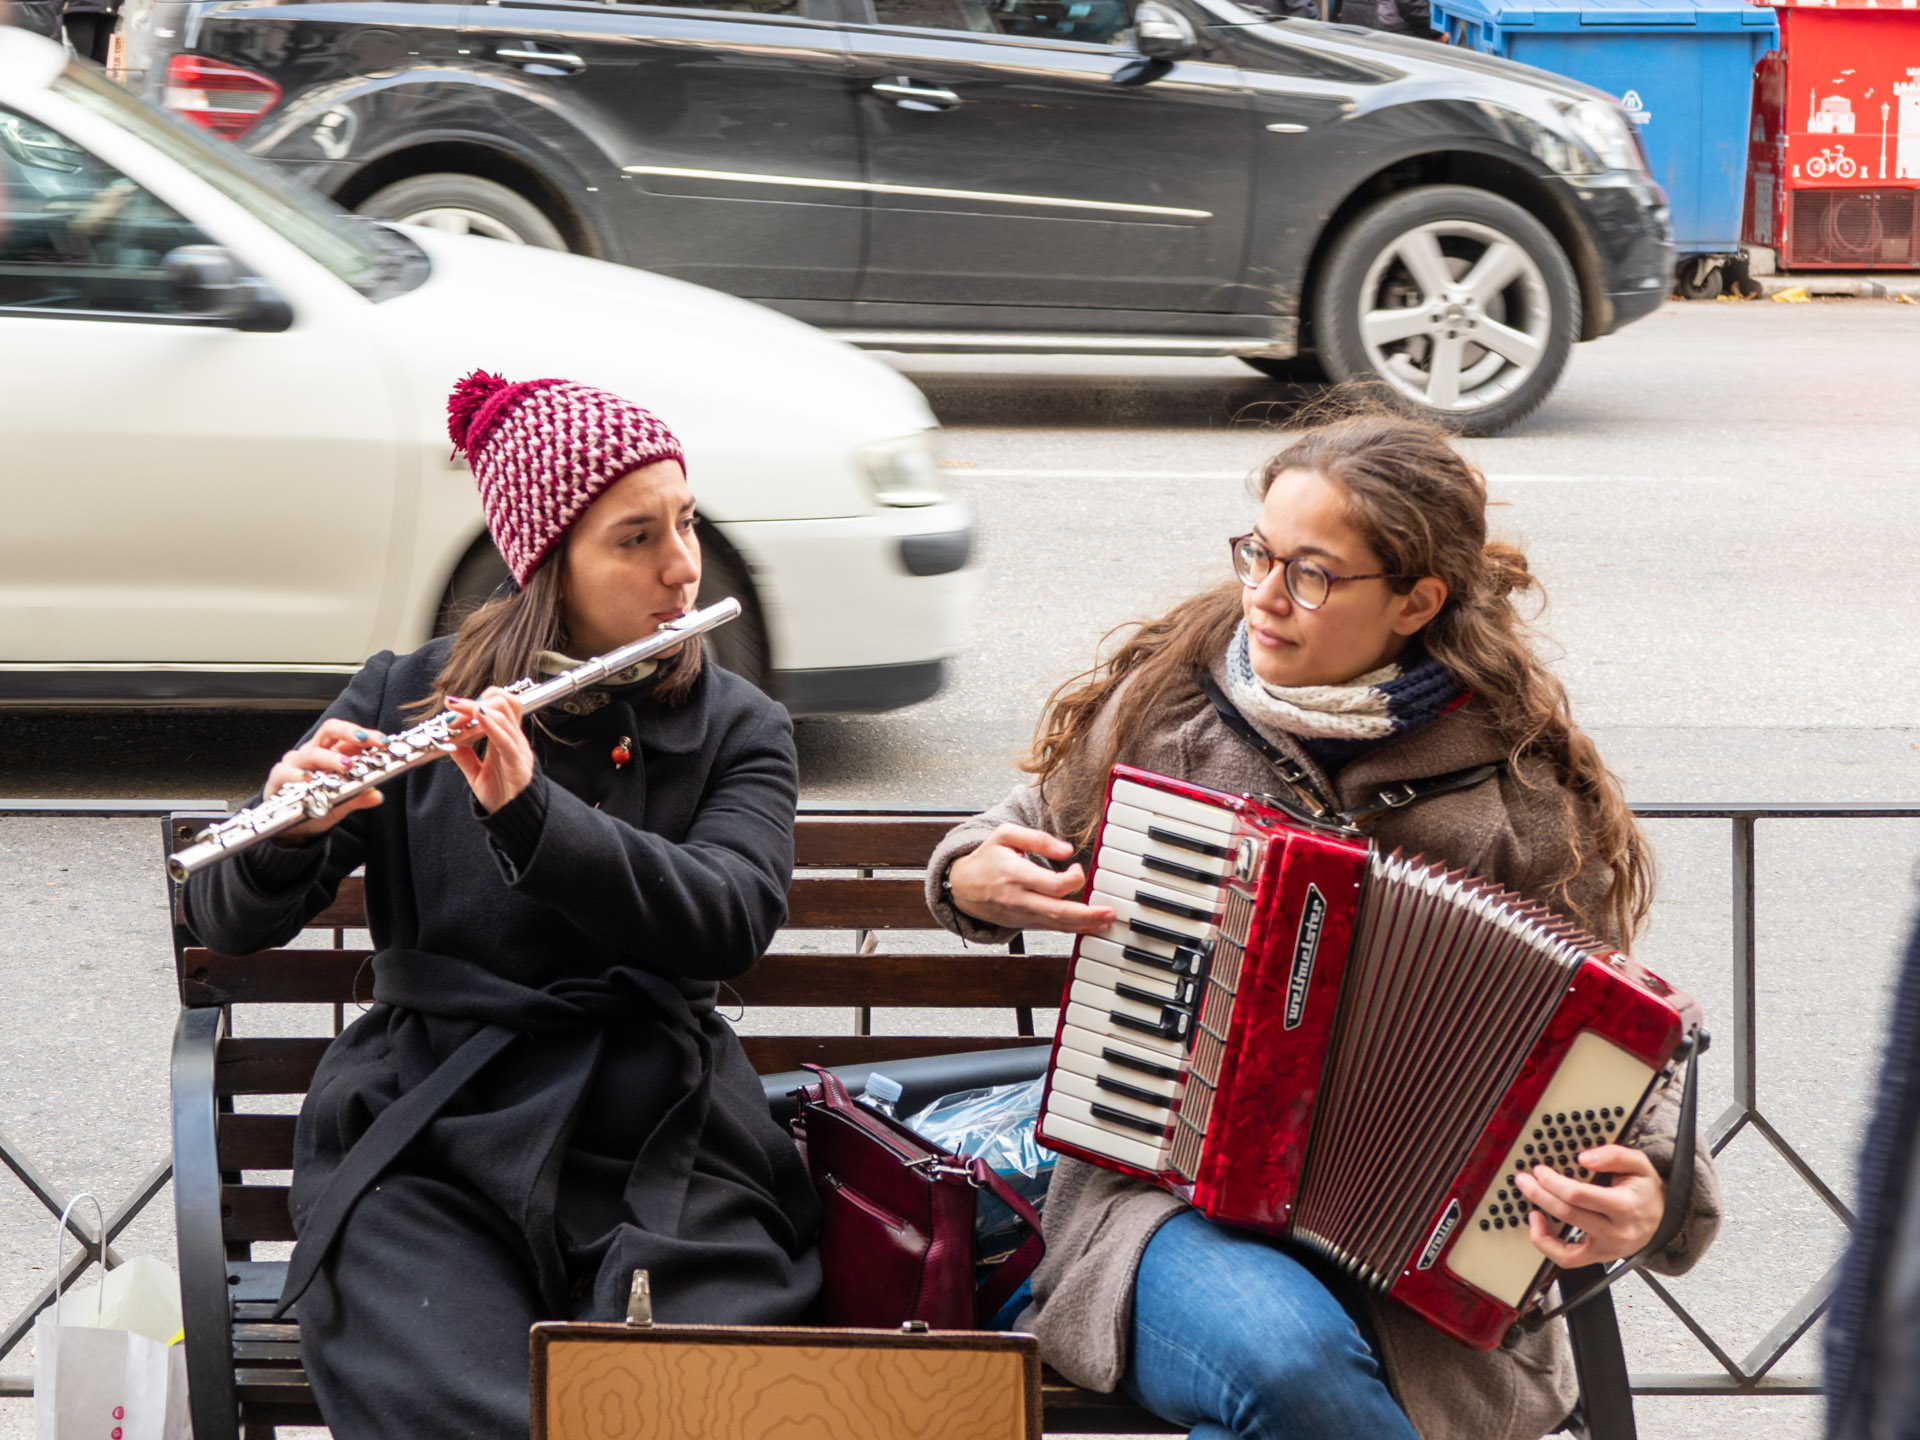 You could hear more traditional christmas songs from this duo